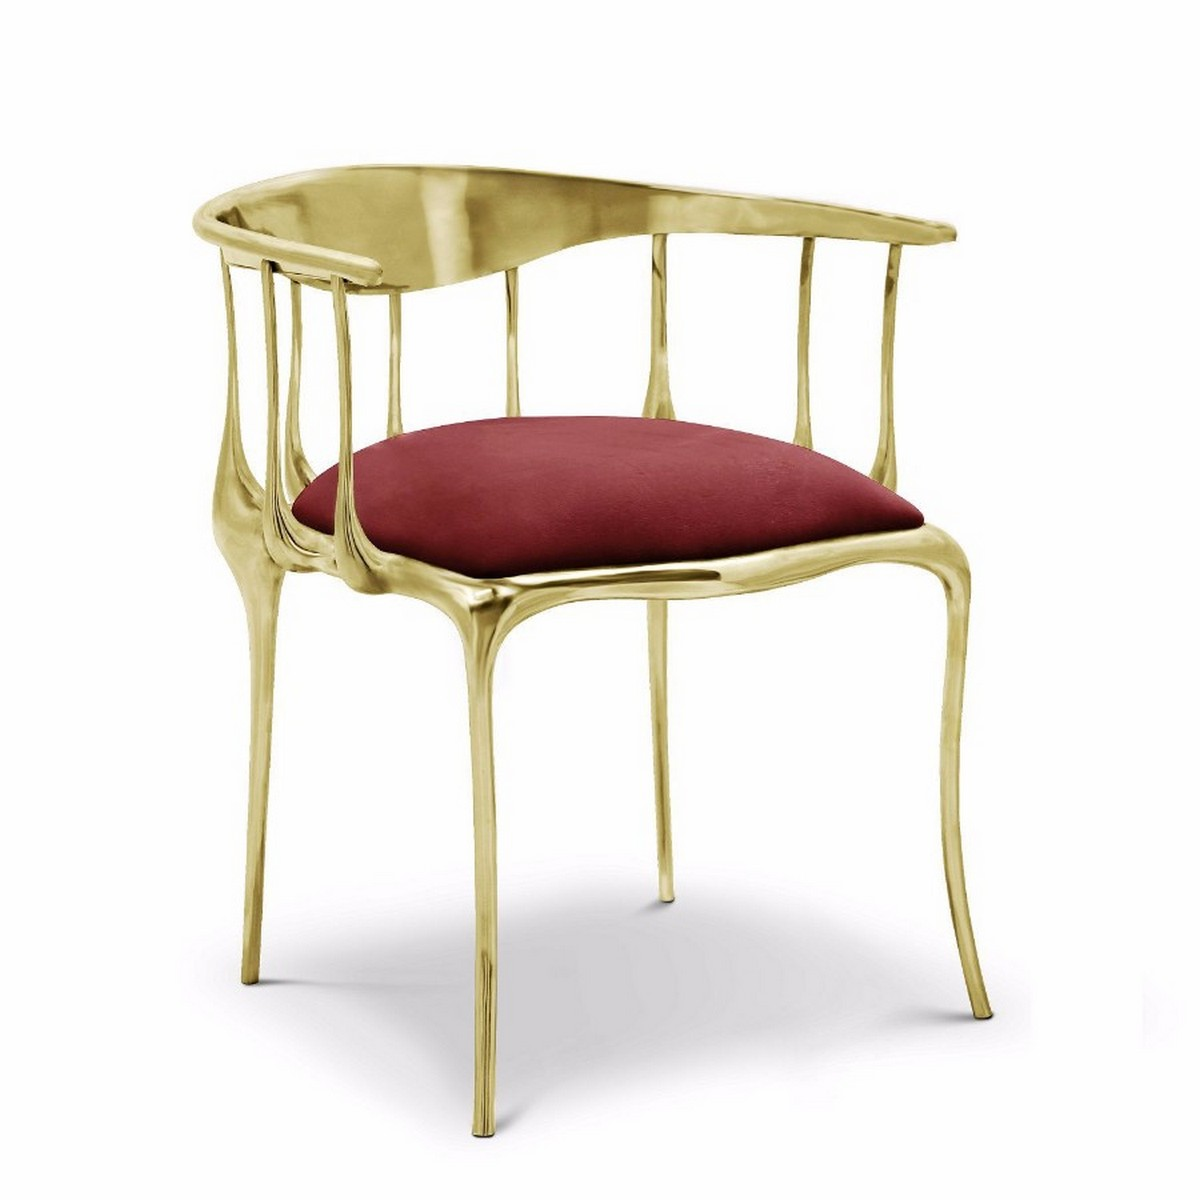 Covet House: Top Dining Chairs at Salone del Mobile Milano salone del mobile milano Covet House: Top Dining Chairs at Salone del Mobile Milano n11 1